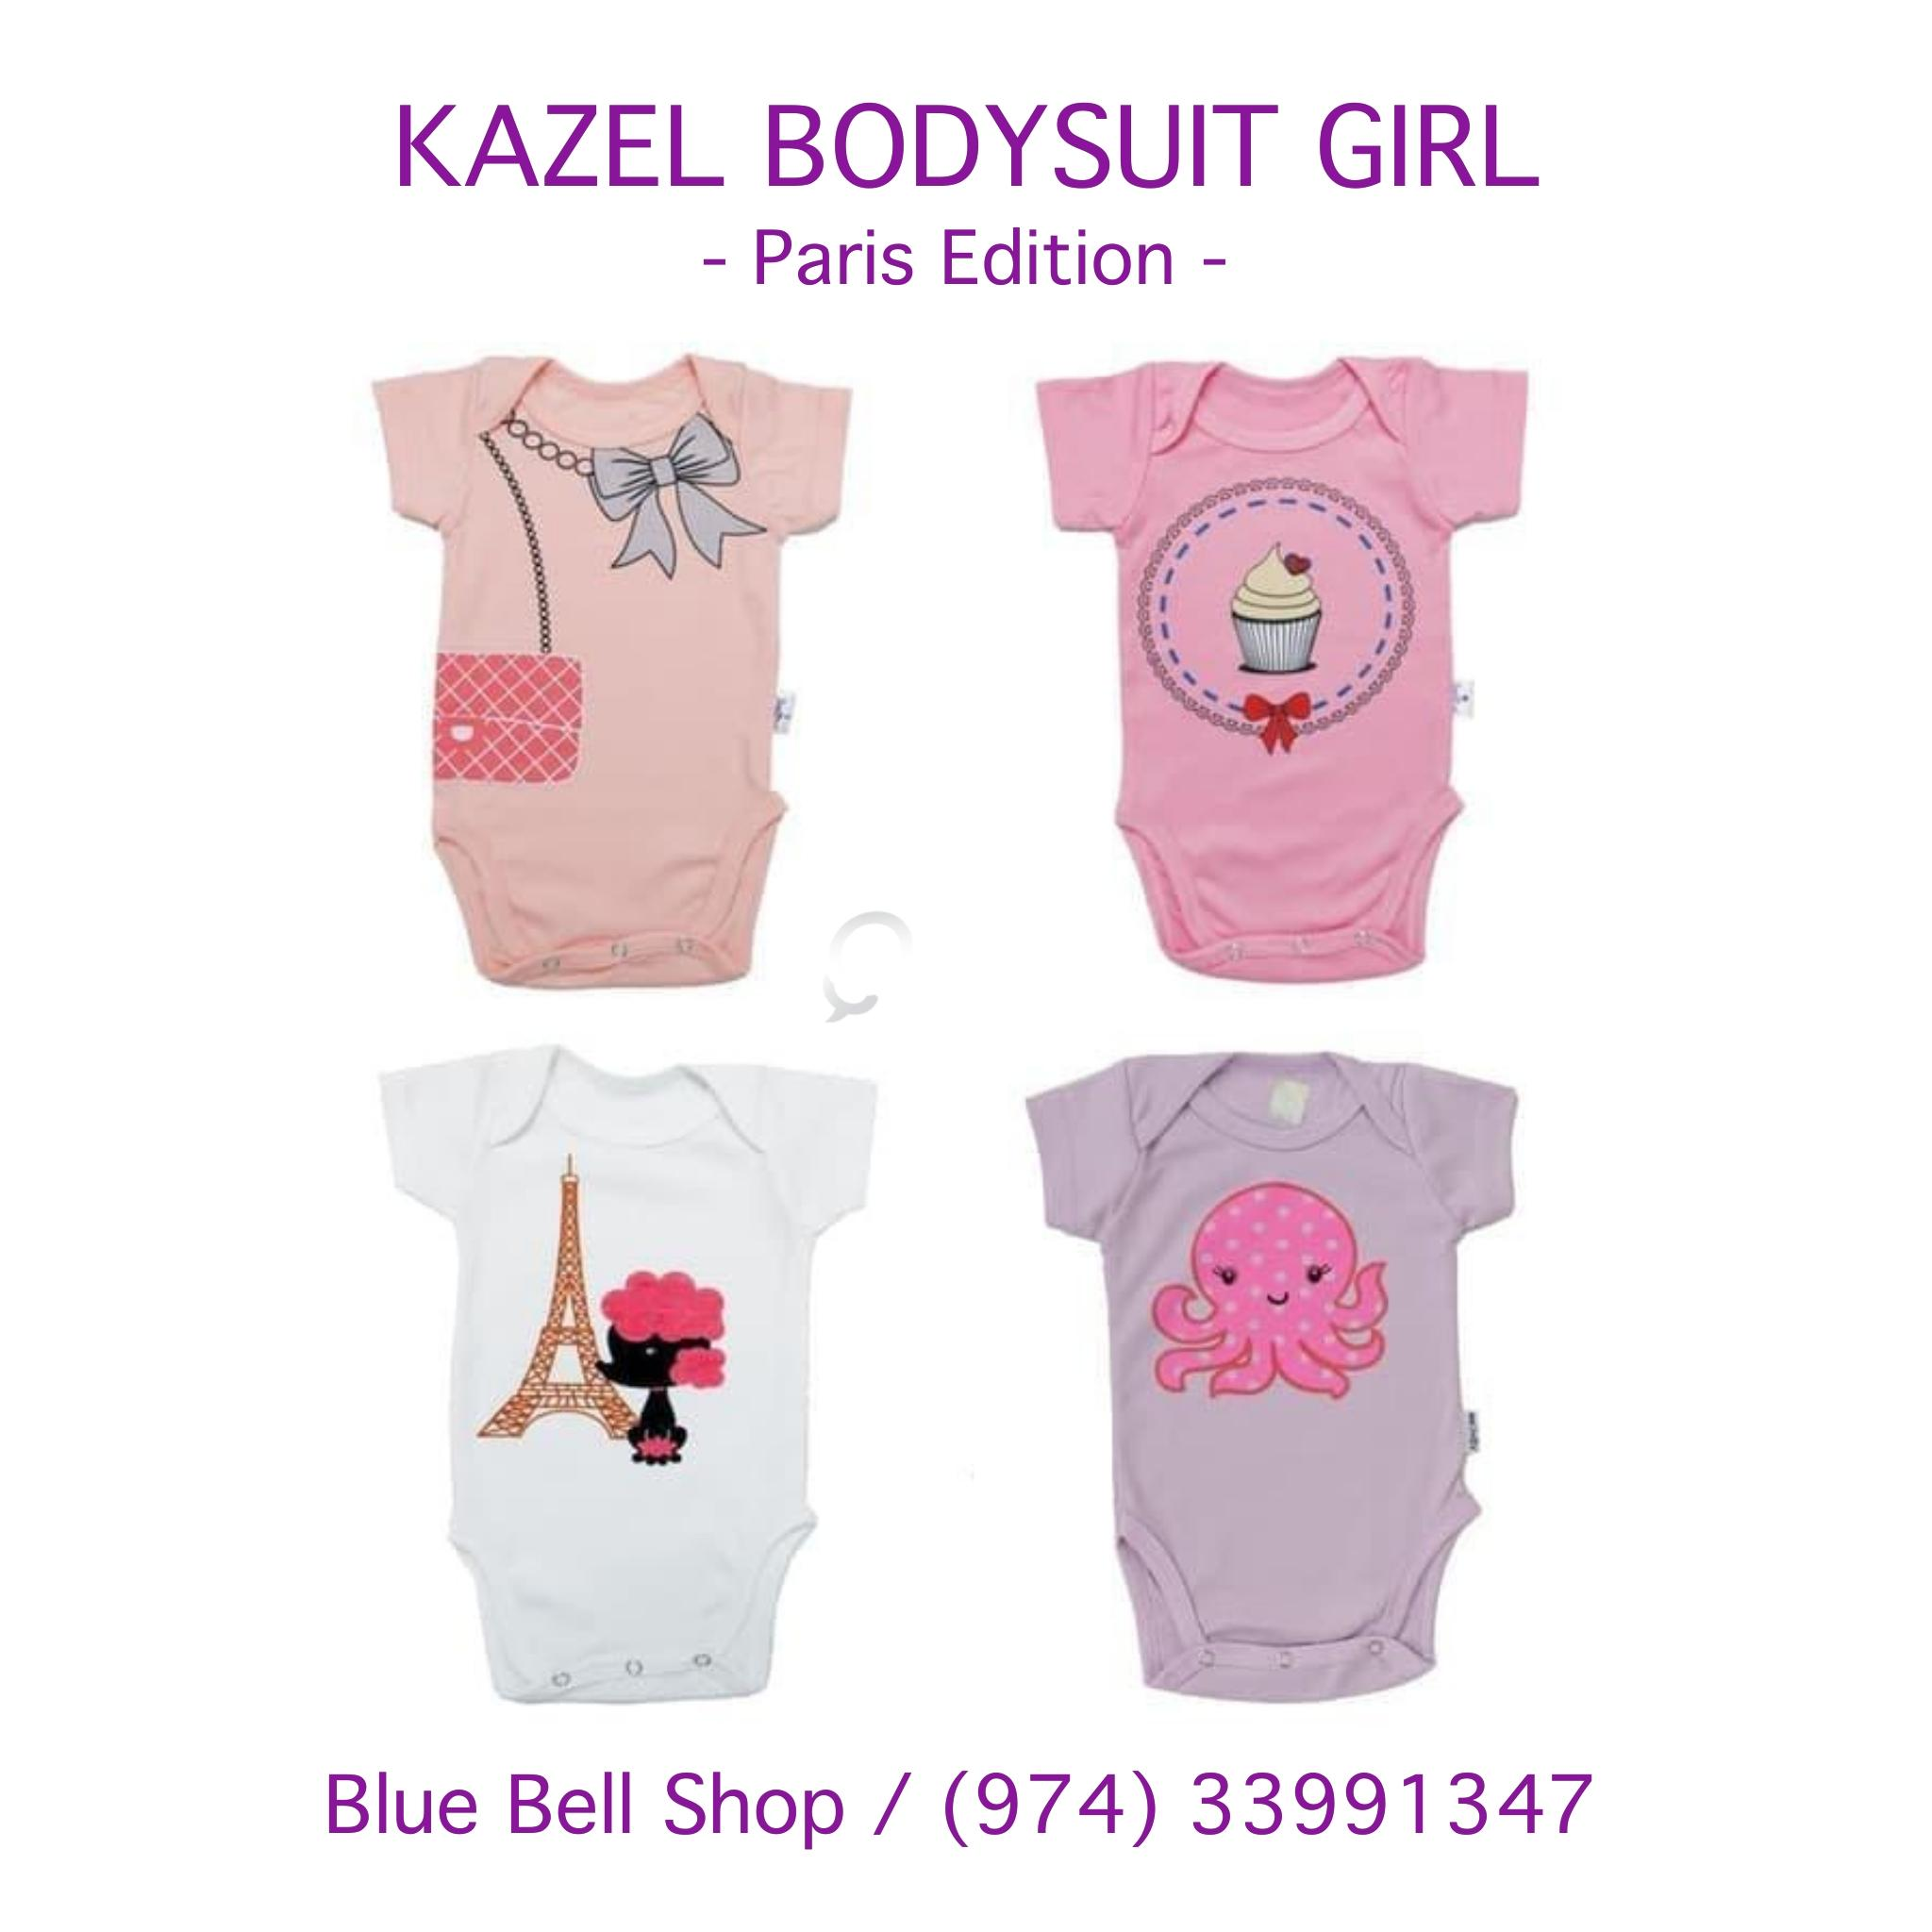 Kazel 4 in 1 Baby Bodysuit / Baby Suit / Baby Clothes / Baby Wear | Qatar Living